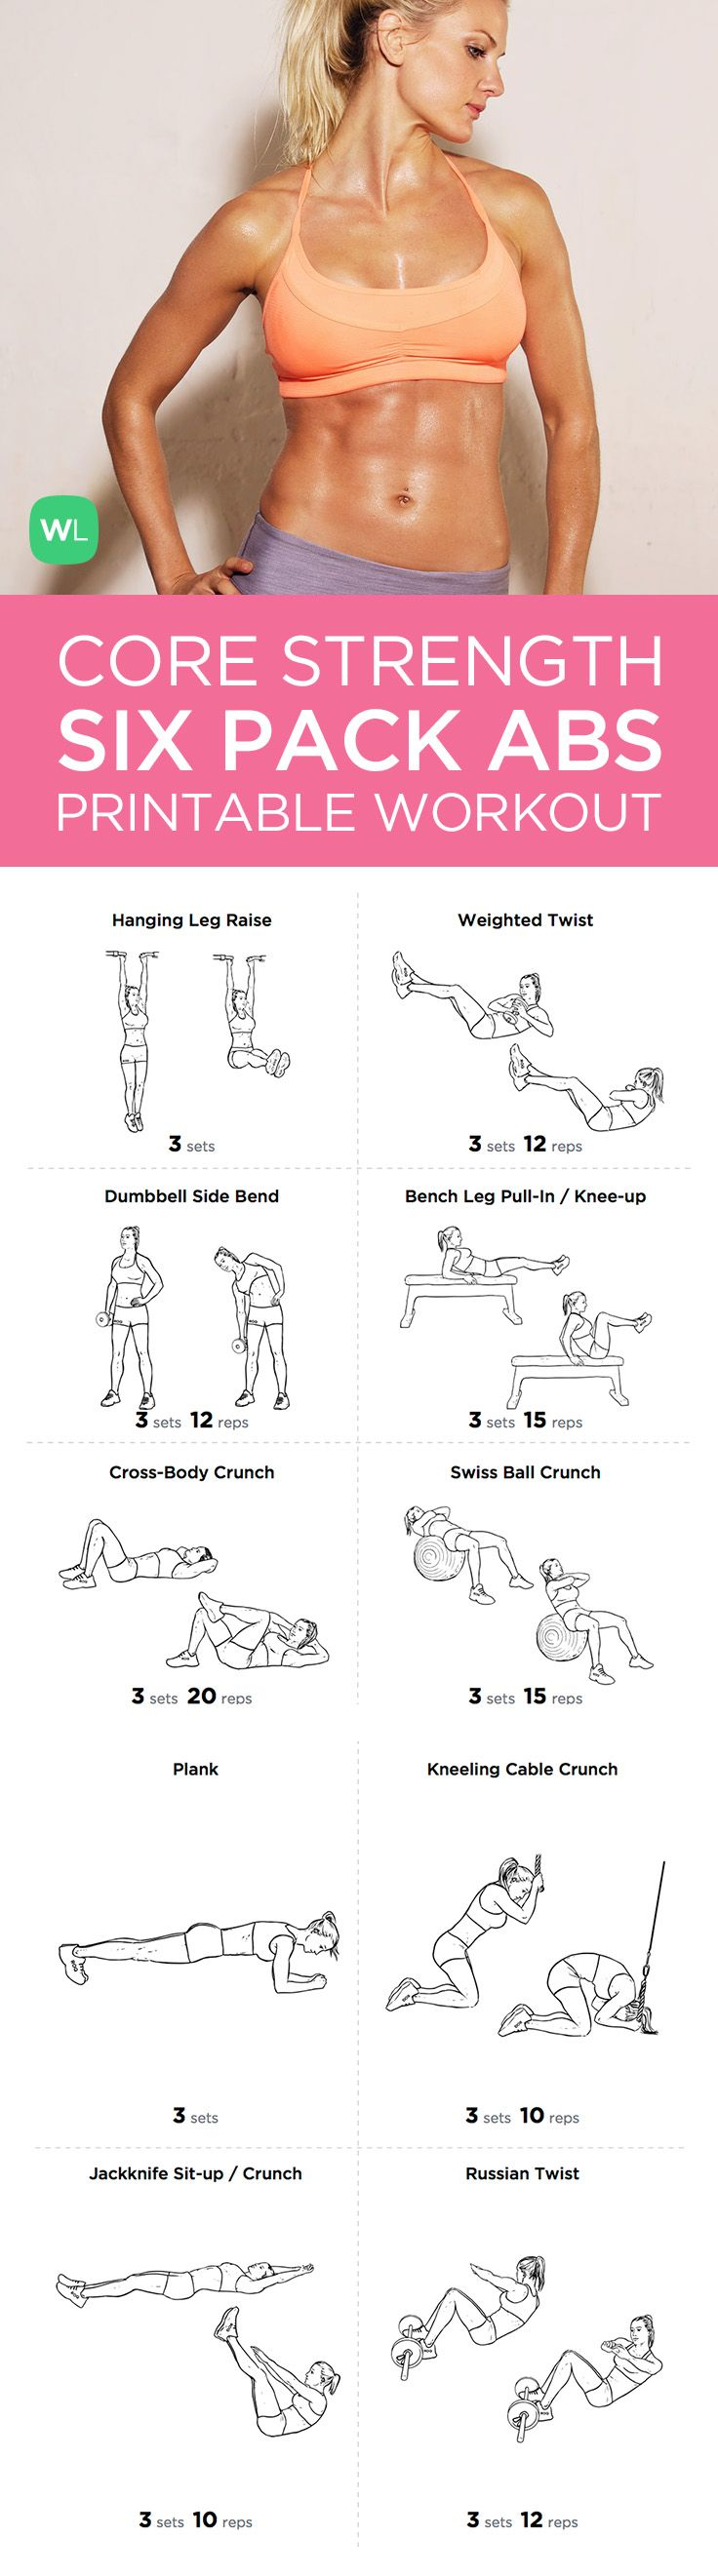 Want to get that perfect six pack? Try this comprehensive abdominal gym workout routine that will hit your upper and lower abs as well as obliques for a perfectly toned core: Six Pack Abs Core Strength Workout Routine for Men and Women Printable Workout by @WorkoutLabs